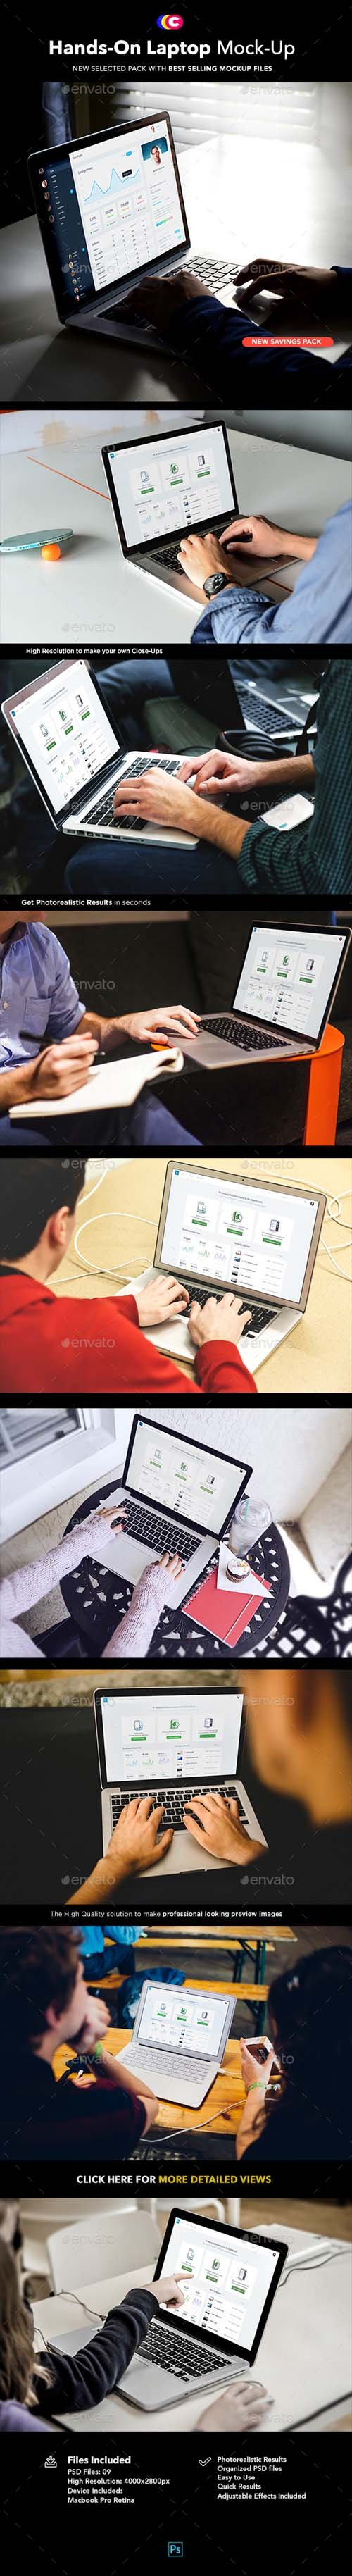 Hands on Laptop MockUp | Workspace Edition 19651770